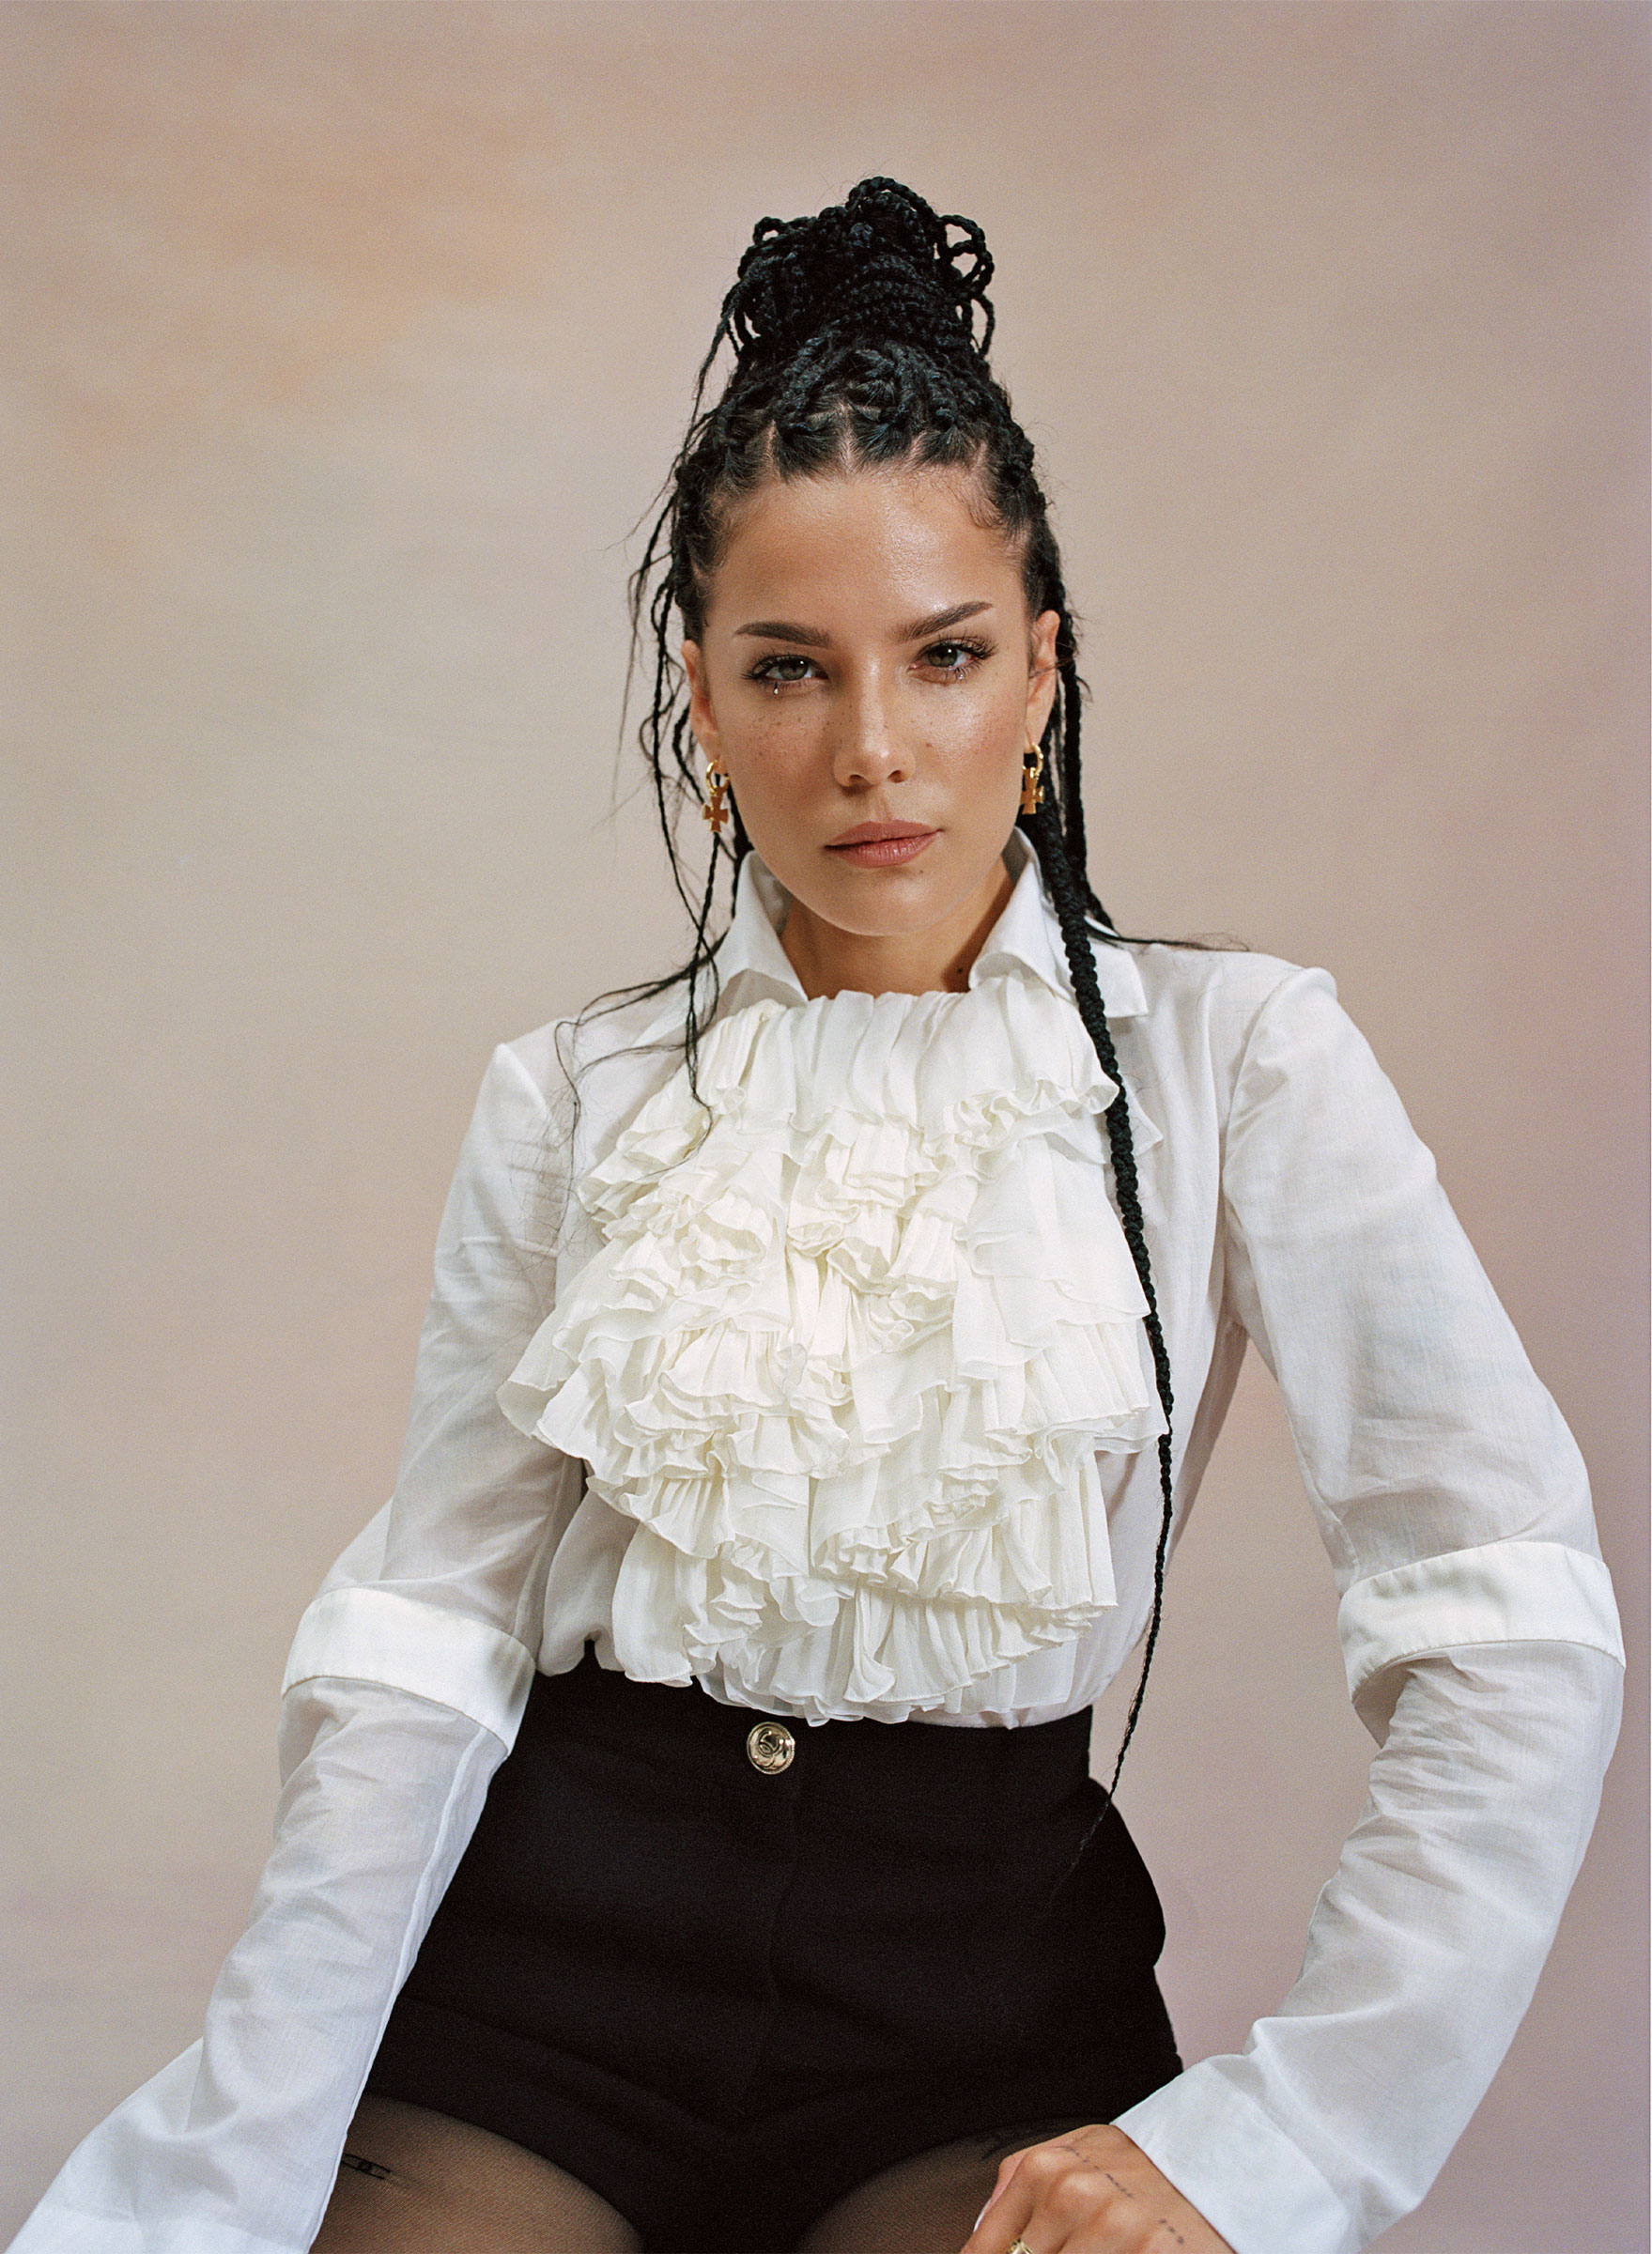 Halsey photographed in Los Angeles, Sept. 15, 2020.